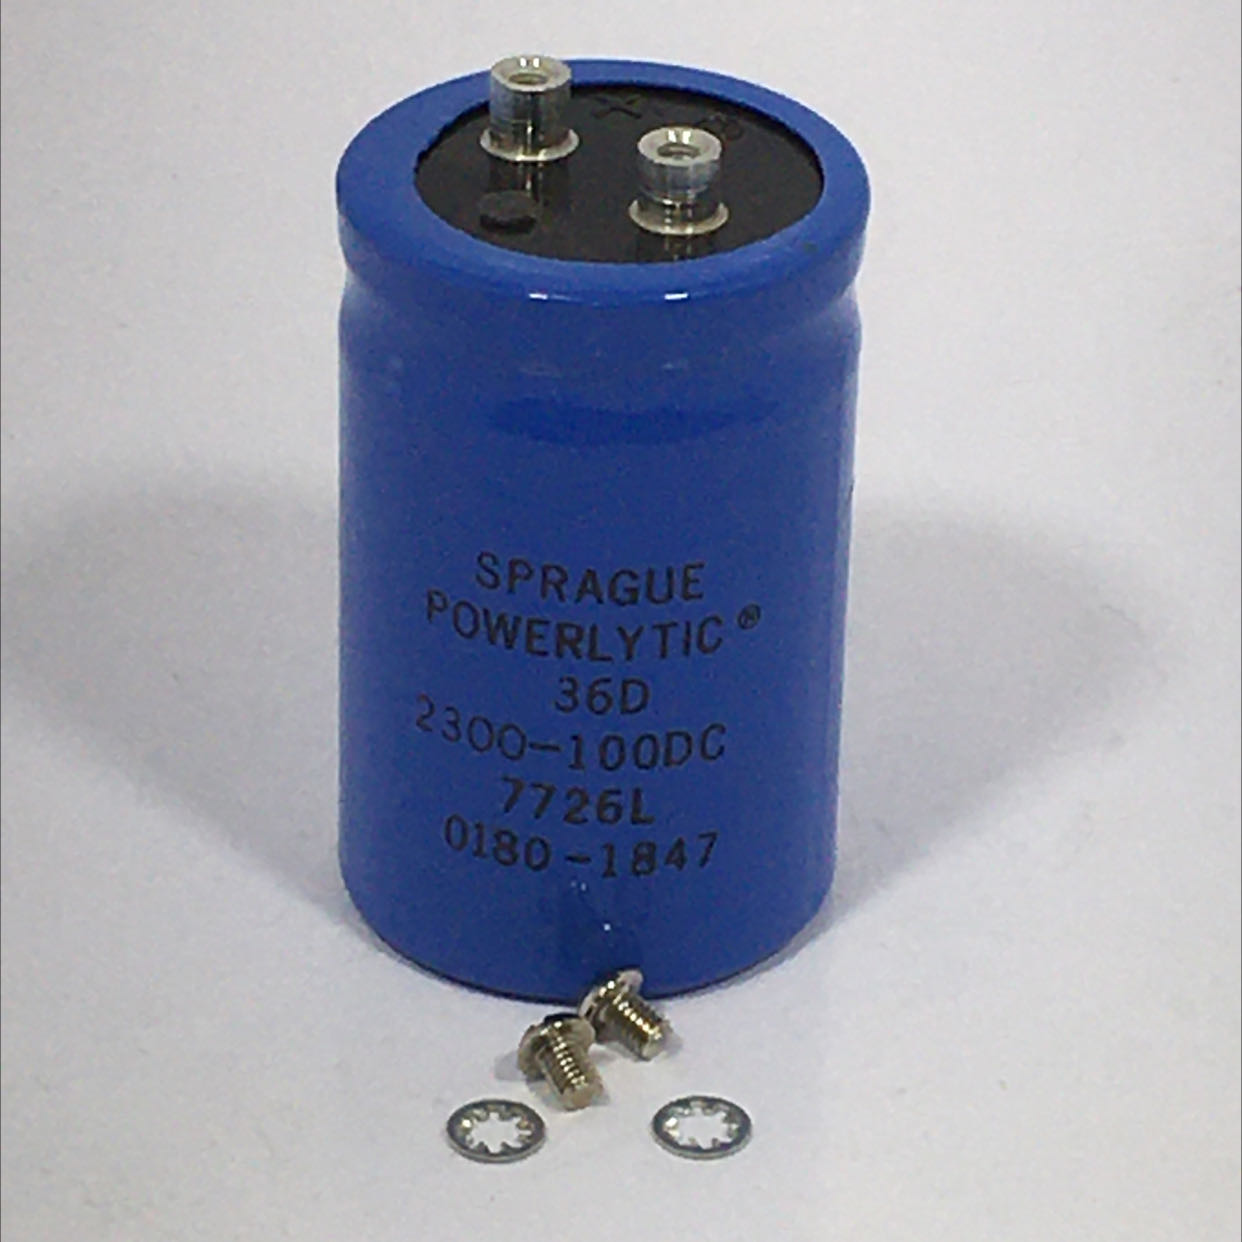 Sprague 36D Powerlytic Capacitor  2300-100DC 7726L